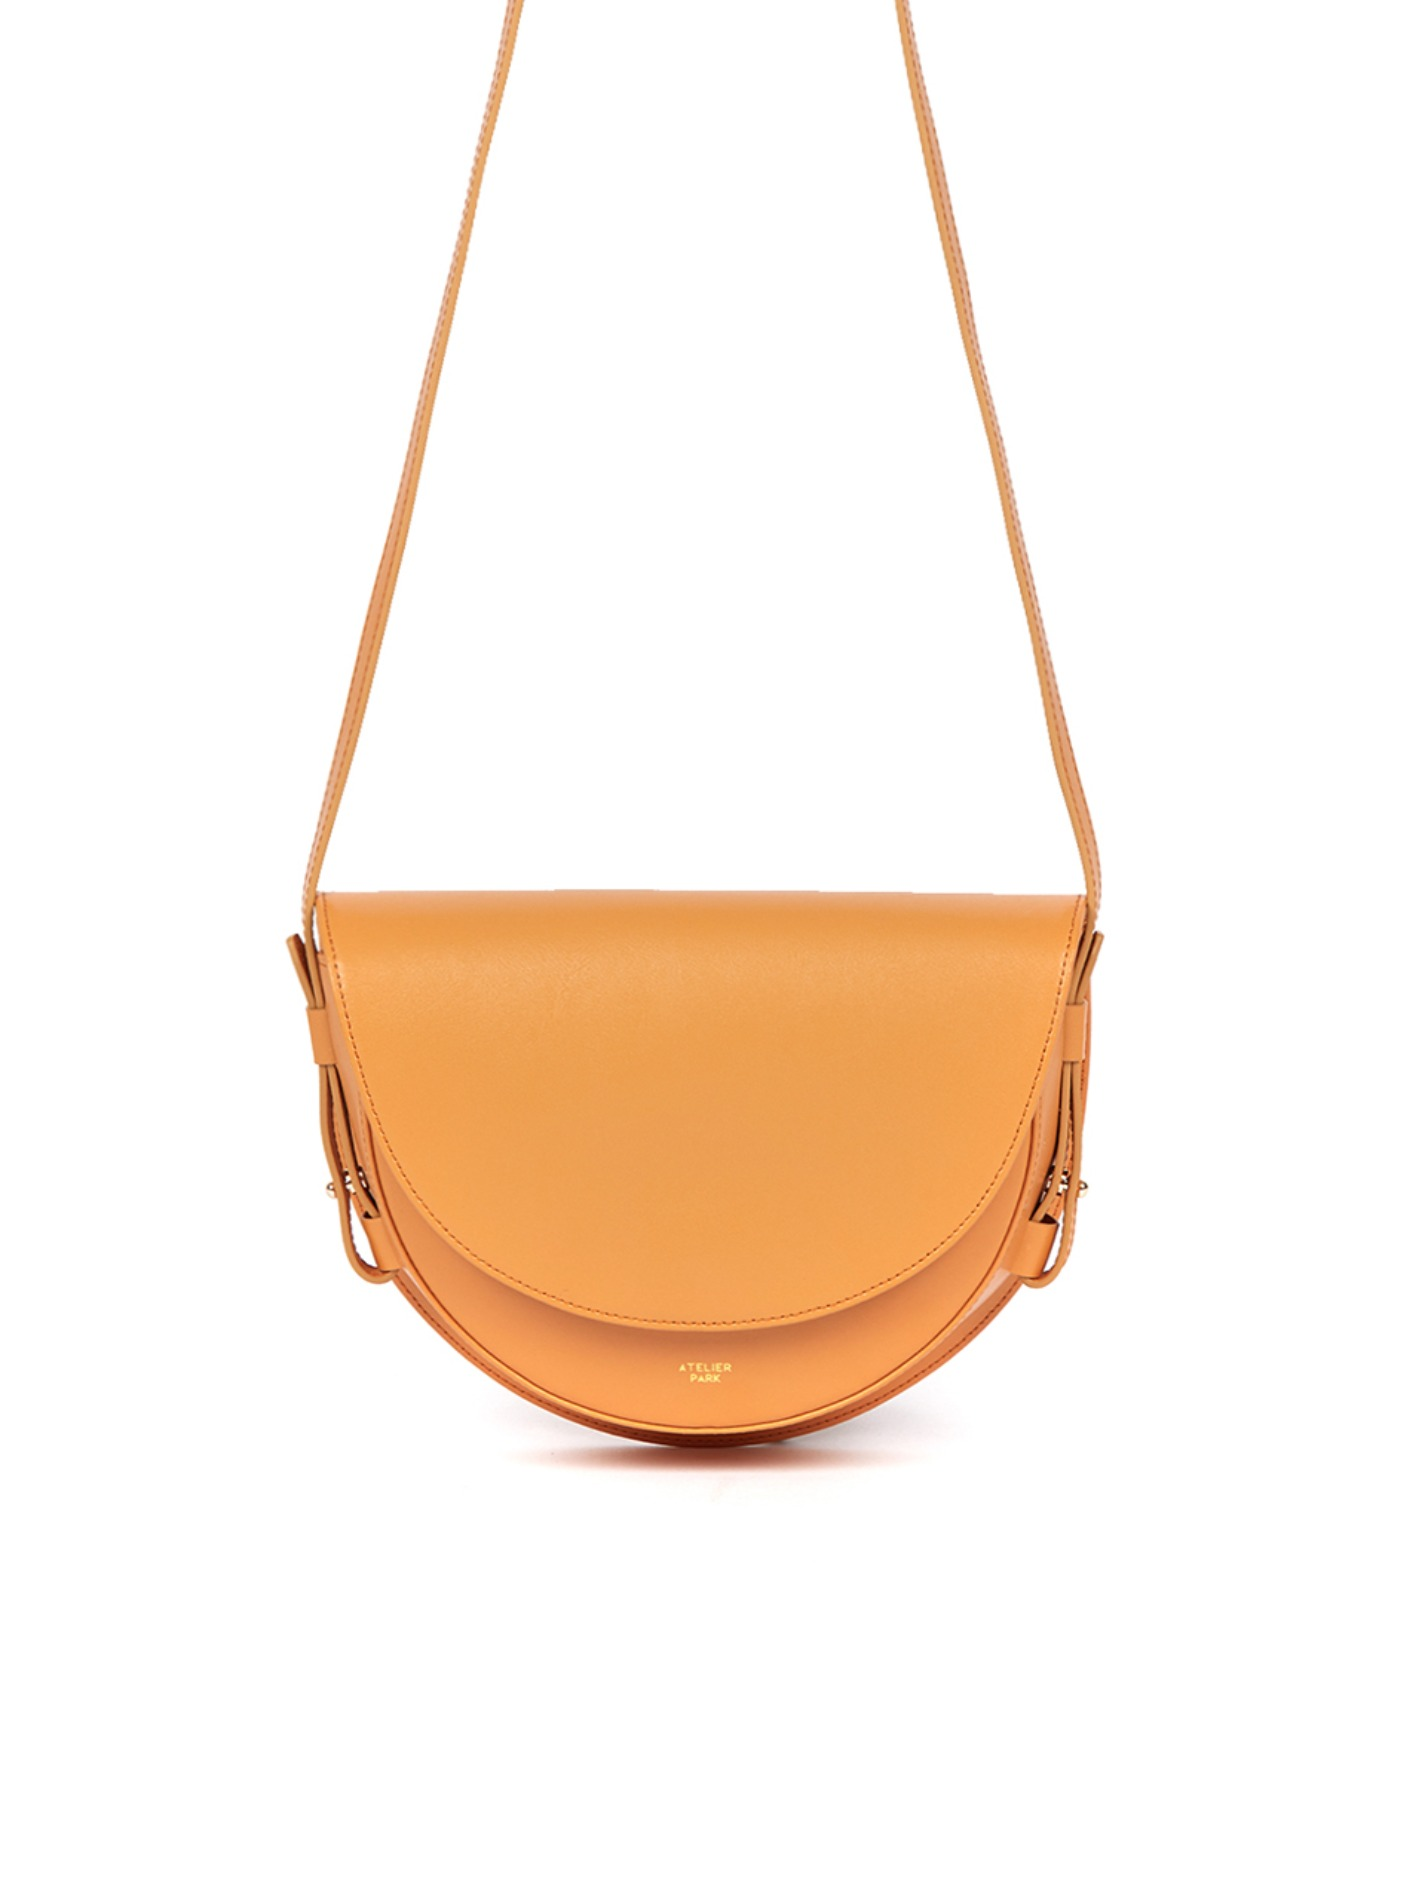 COW LEATHER LAMI BAG - MUSTARD